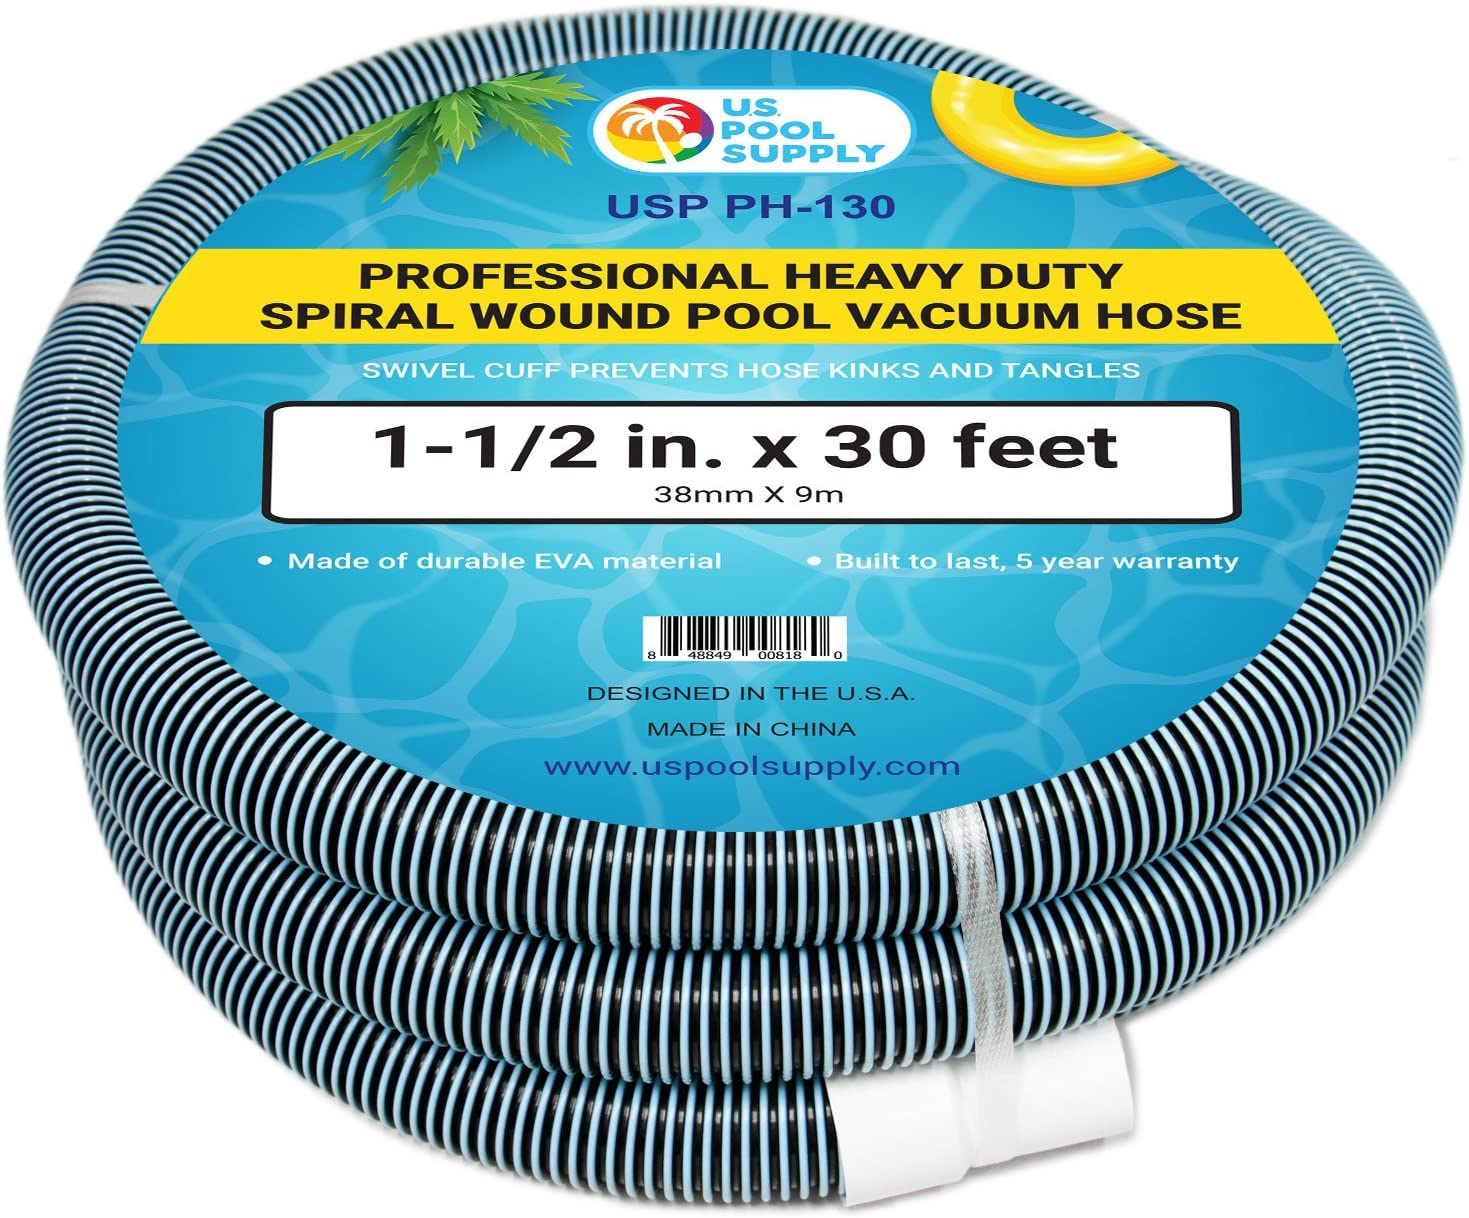 "U.S. Pool Supply 1-1/2"" x 30 Foot Professional Heavy Duty Spiral Wound Swimming Pool Vacuum Hose with Swivel Cuff"